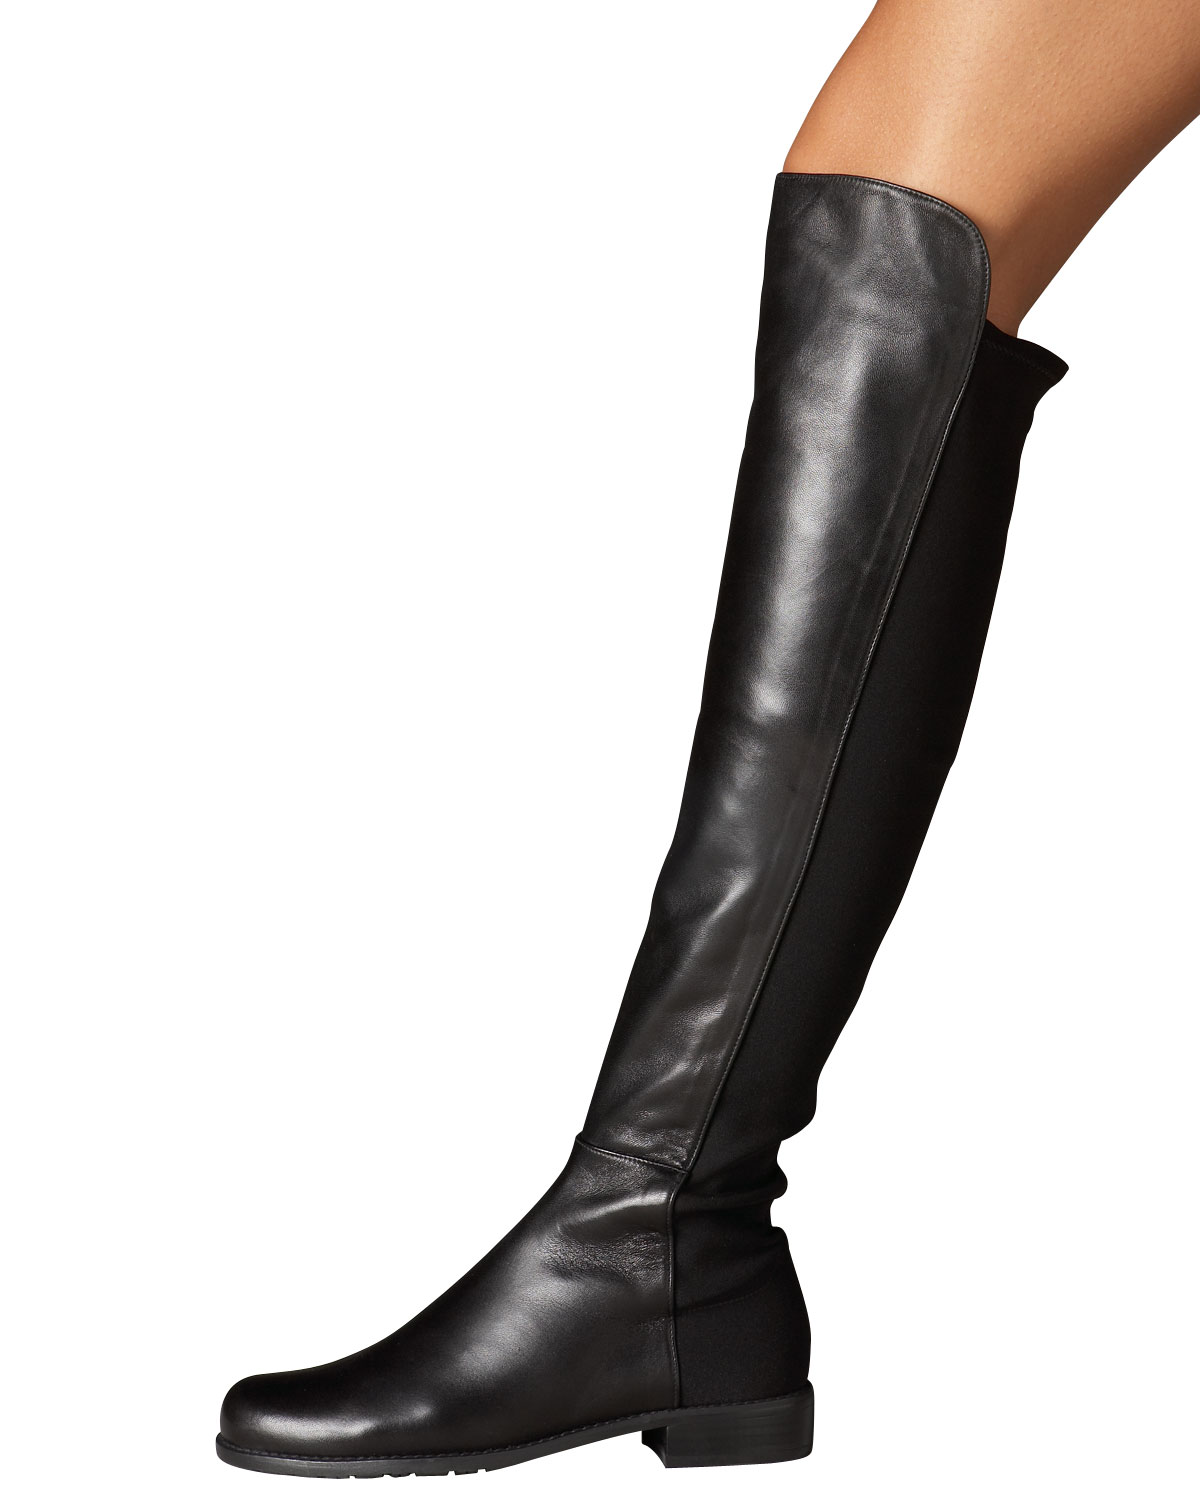 stuart weitzman leather and suede otk boot in black lyst